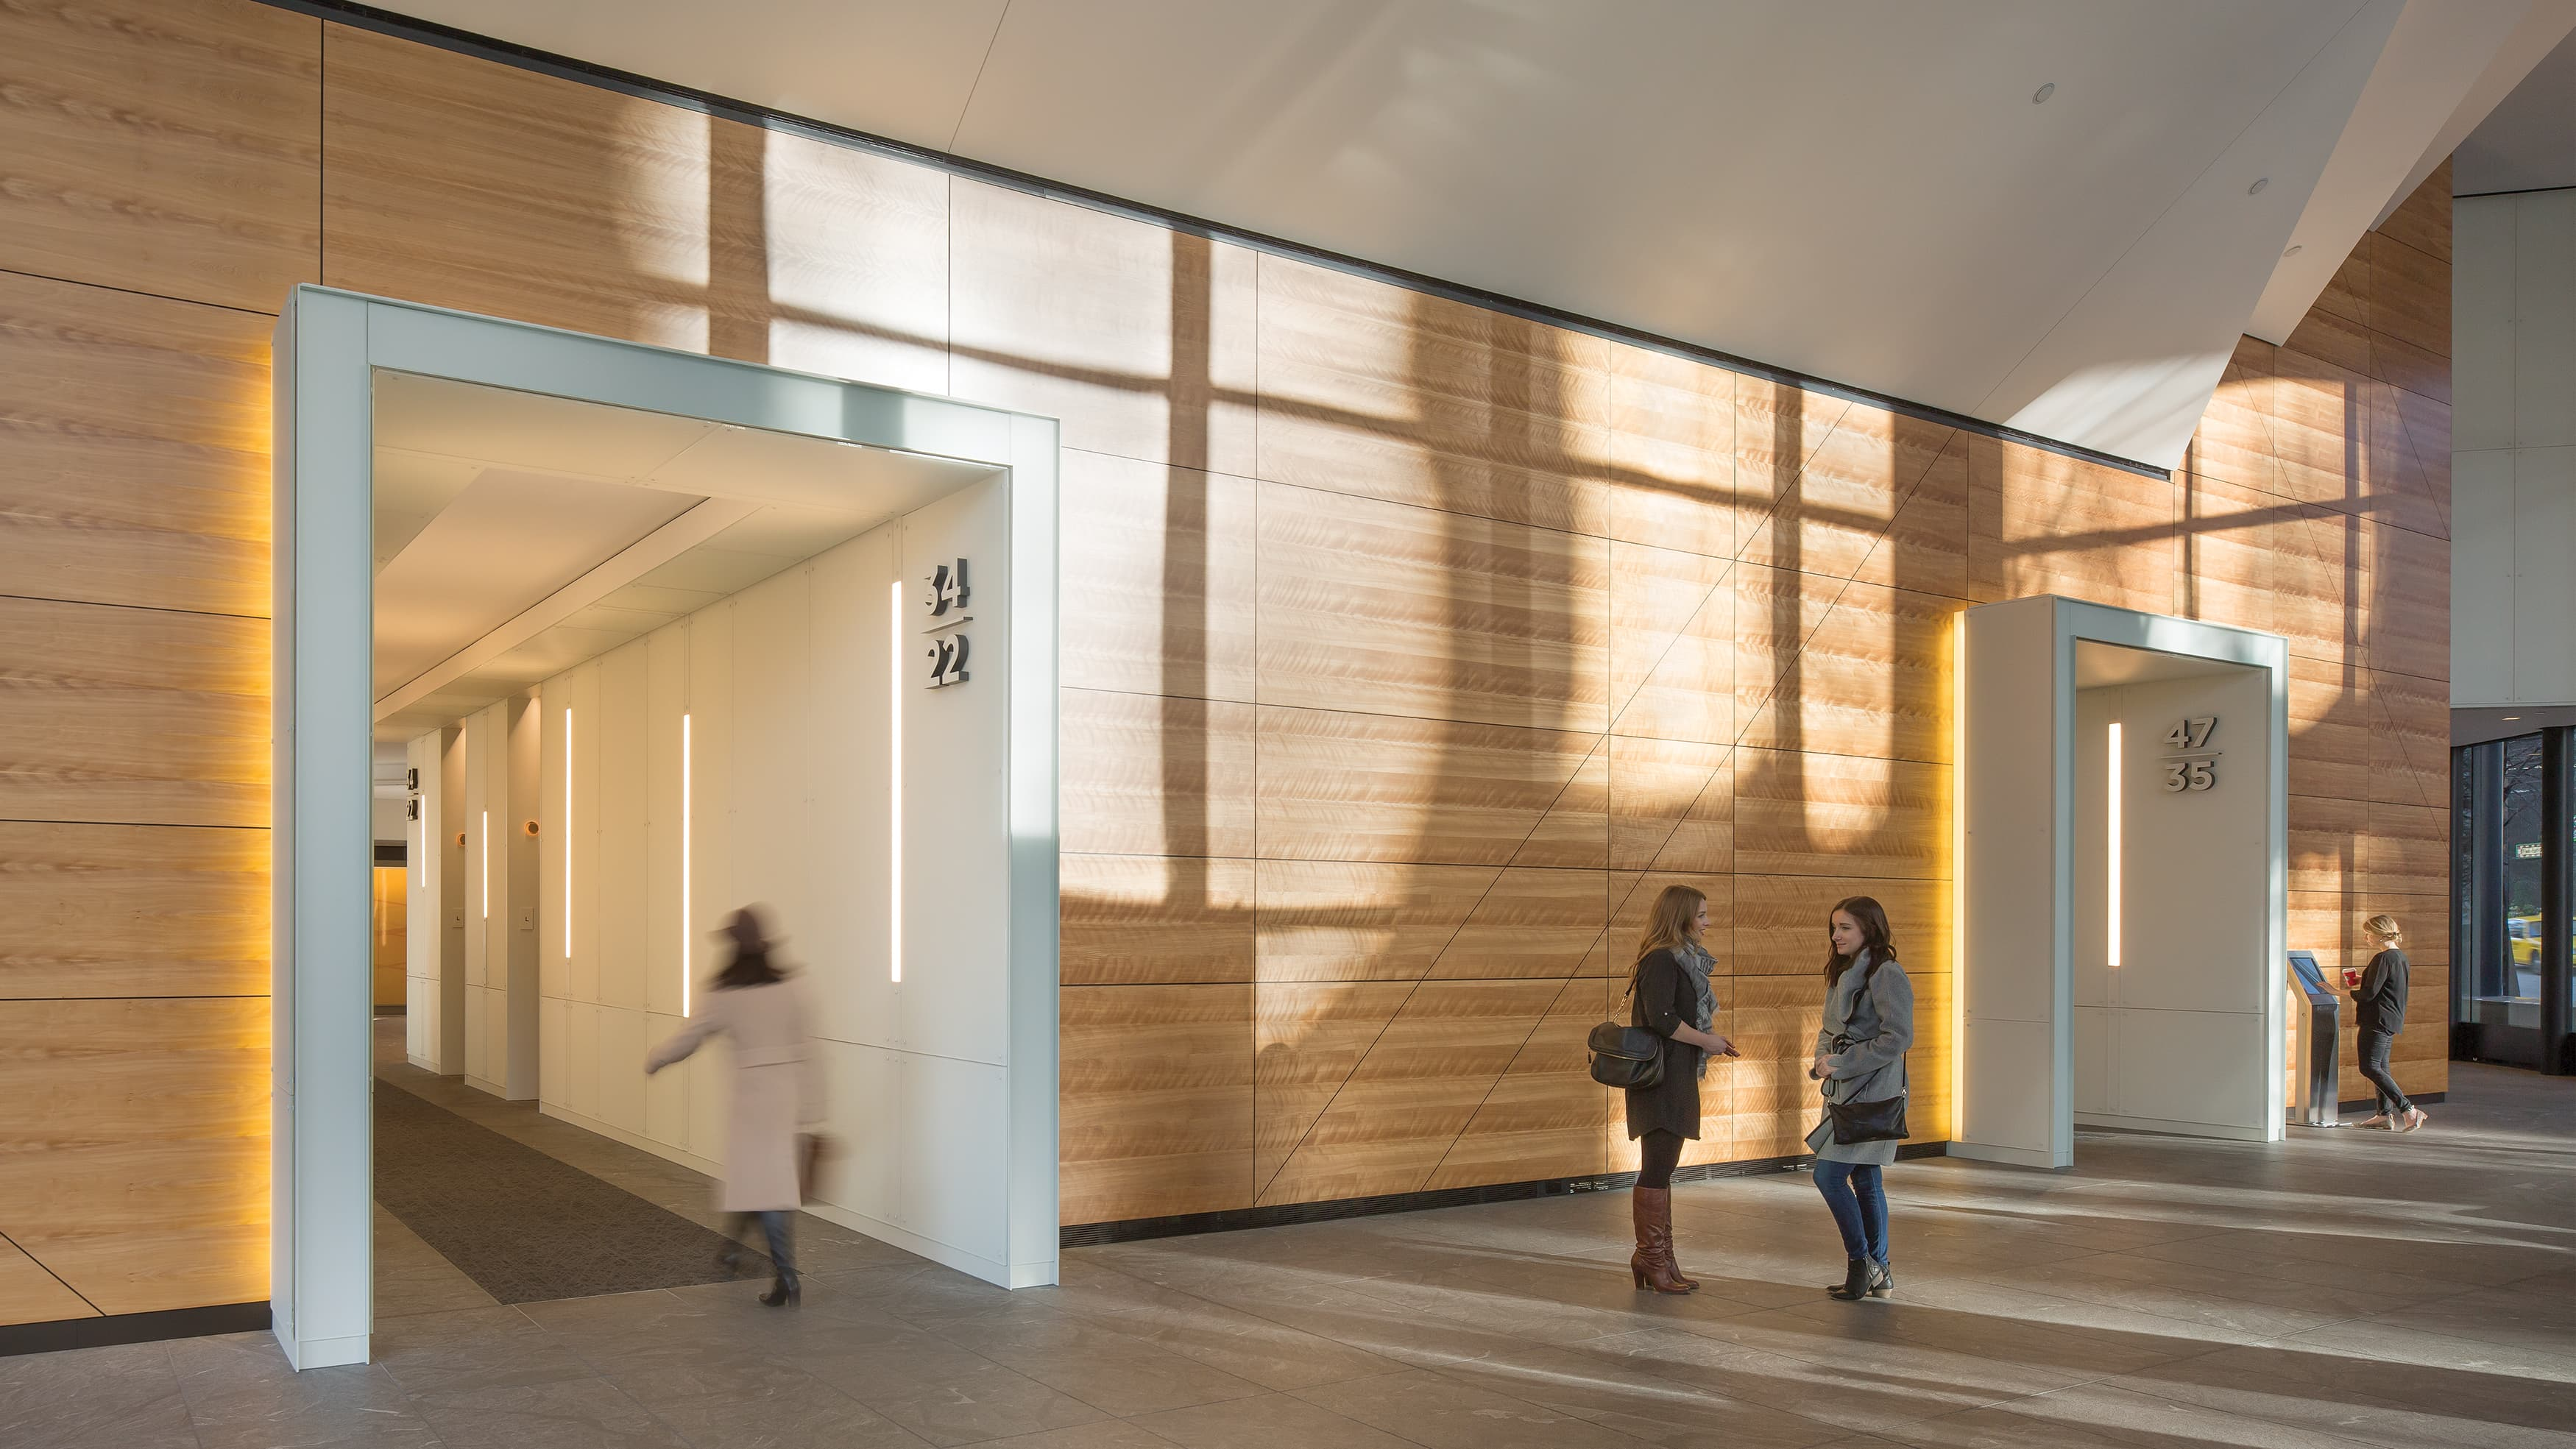 Wood wall in interior of modern office building with people walking through.